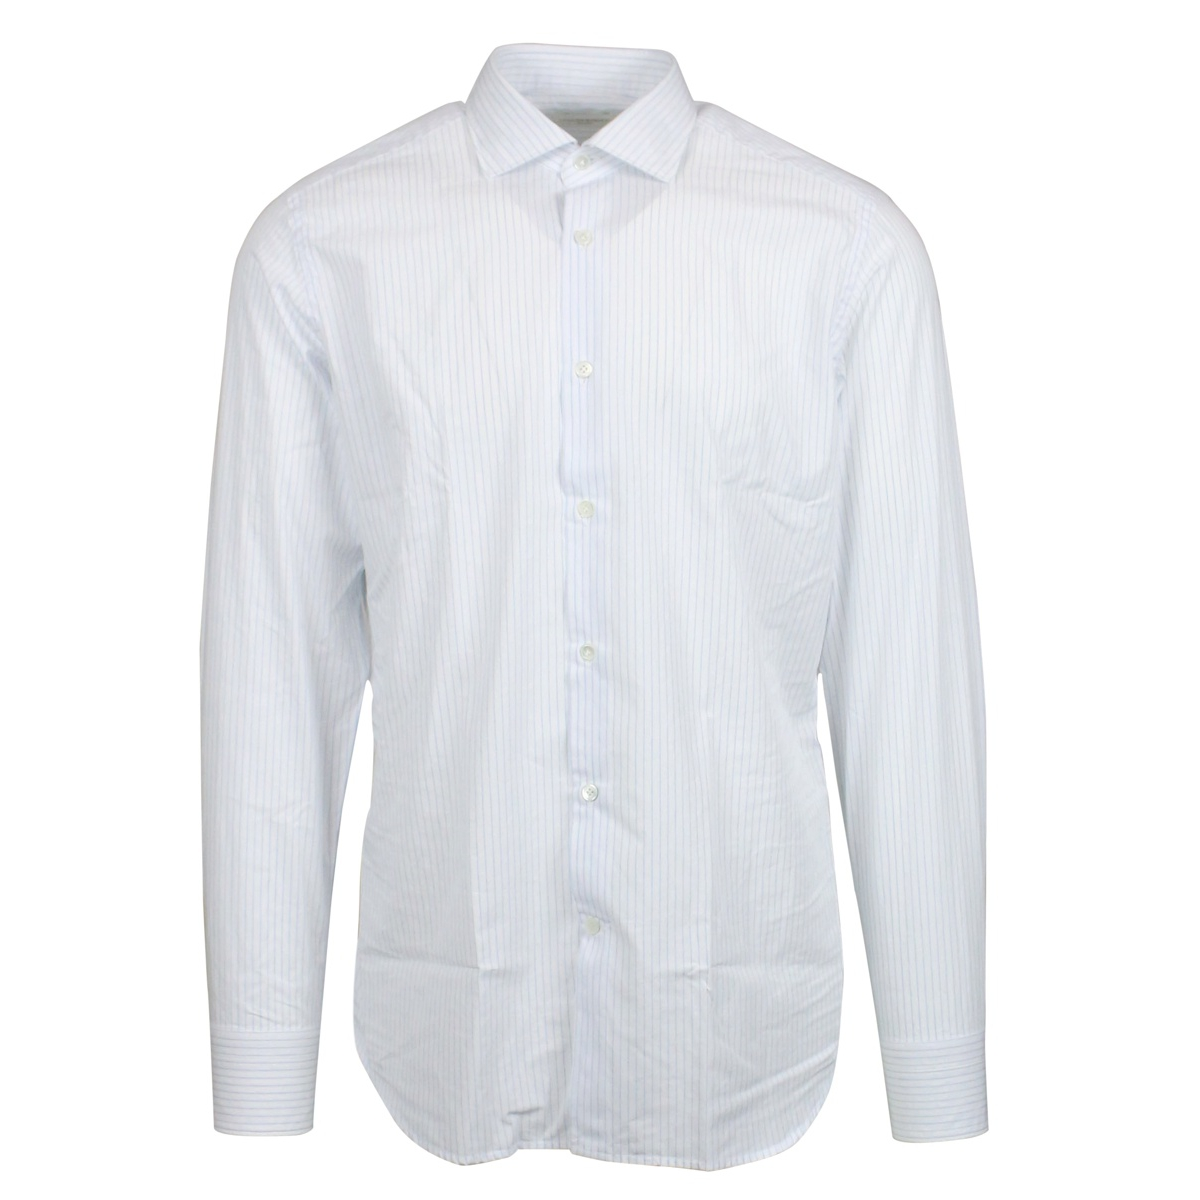 Micro-line custom-fit shirt White Guglilminotti